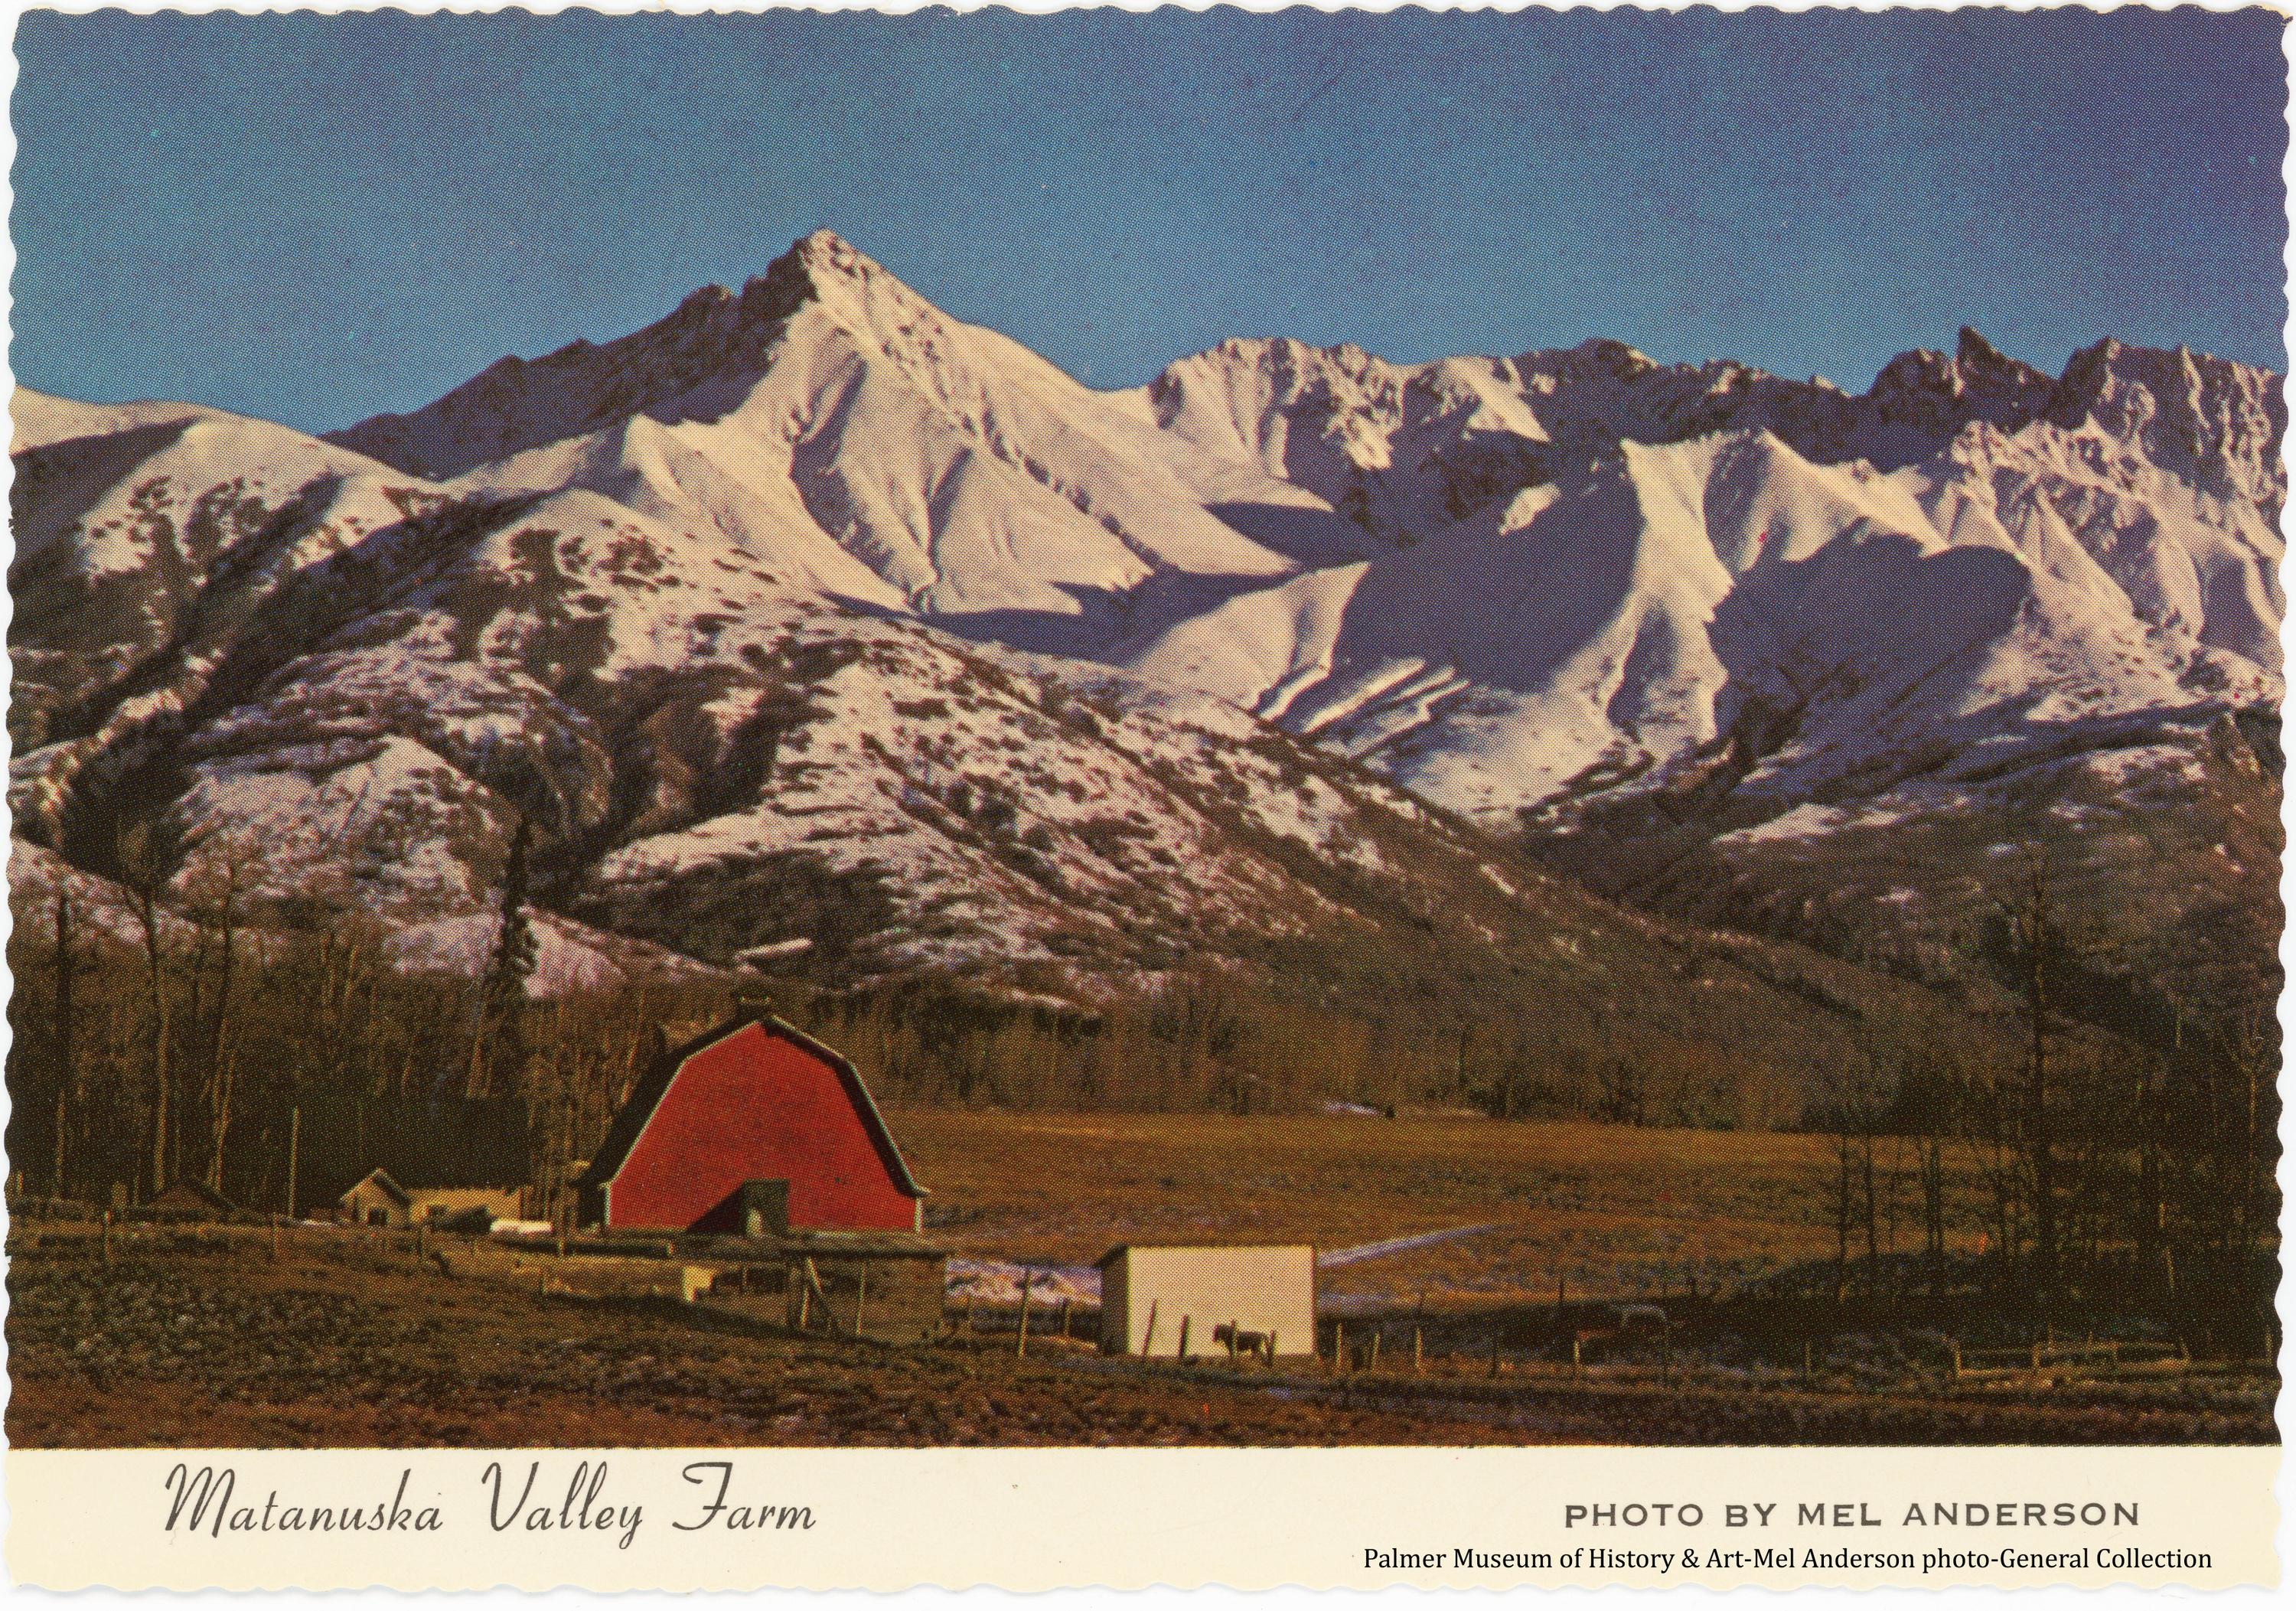 Image is an easterly view of a red barn and other outbuildings of a Matanuska Colony farmstead located on tract #169 along the Palmer Fishhook Road north of Palmer.  Snow-clad mountains form the prominent background